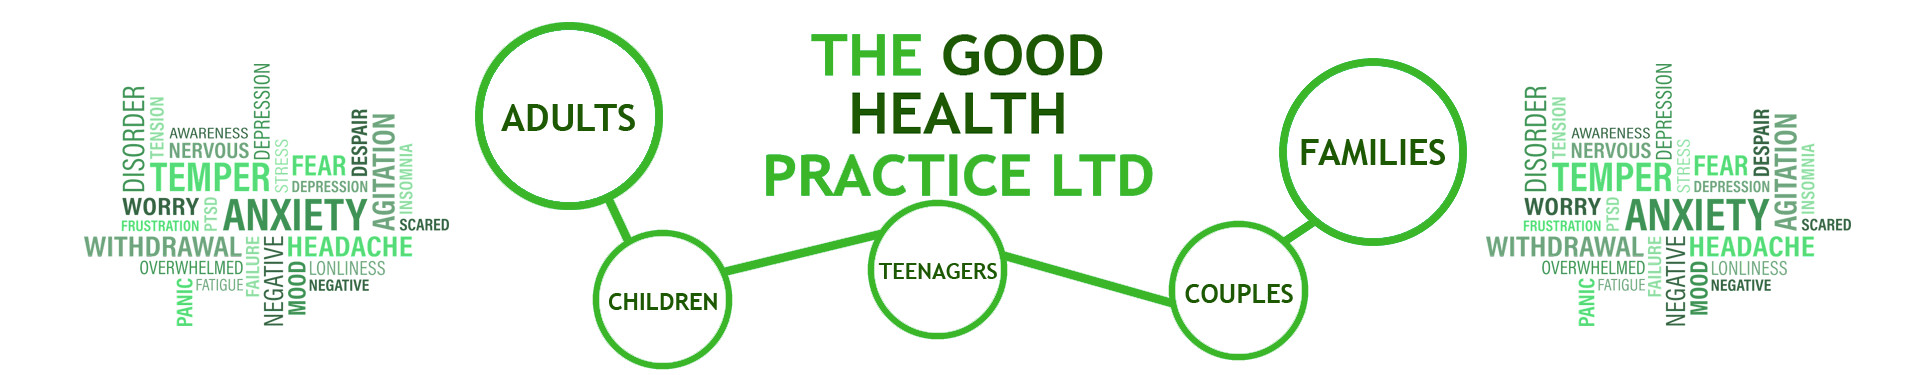 Services The Good Health Practice Limited